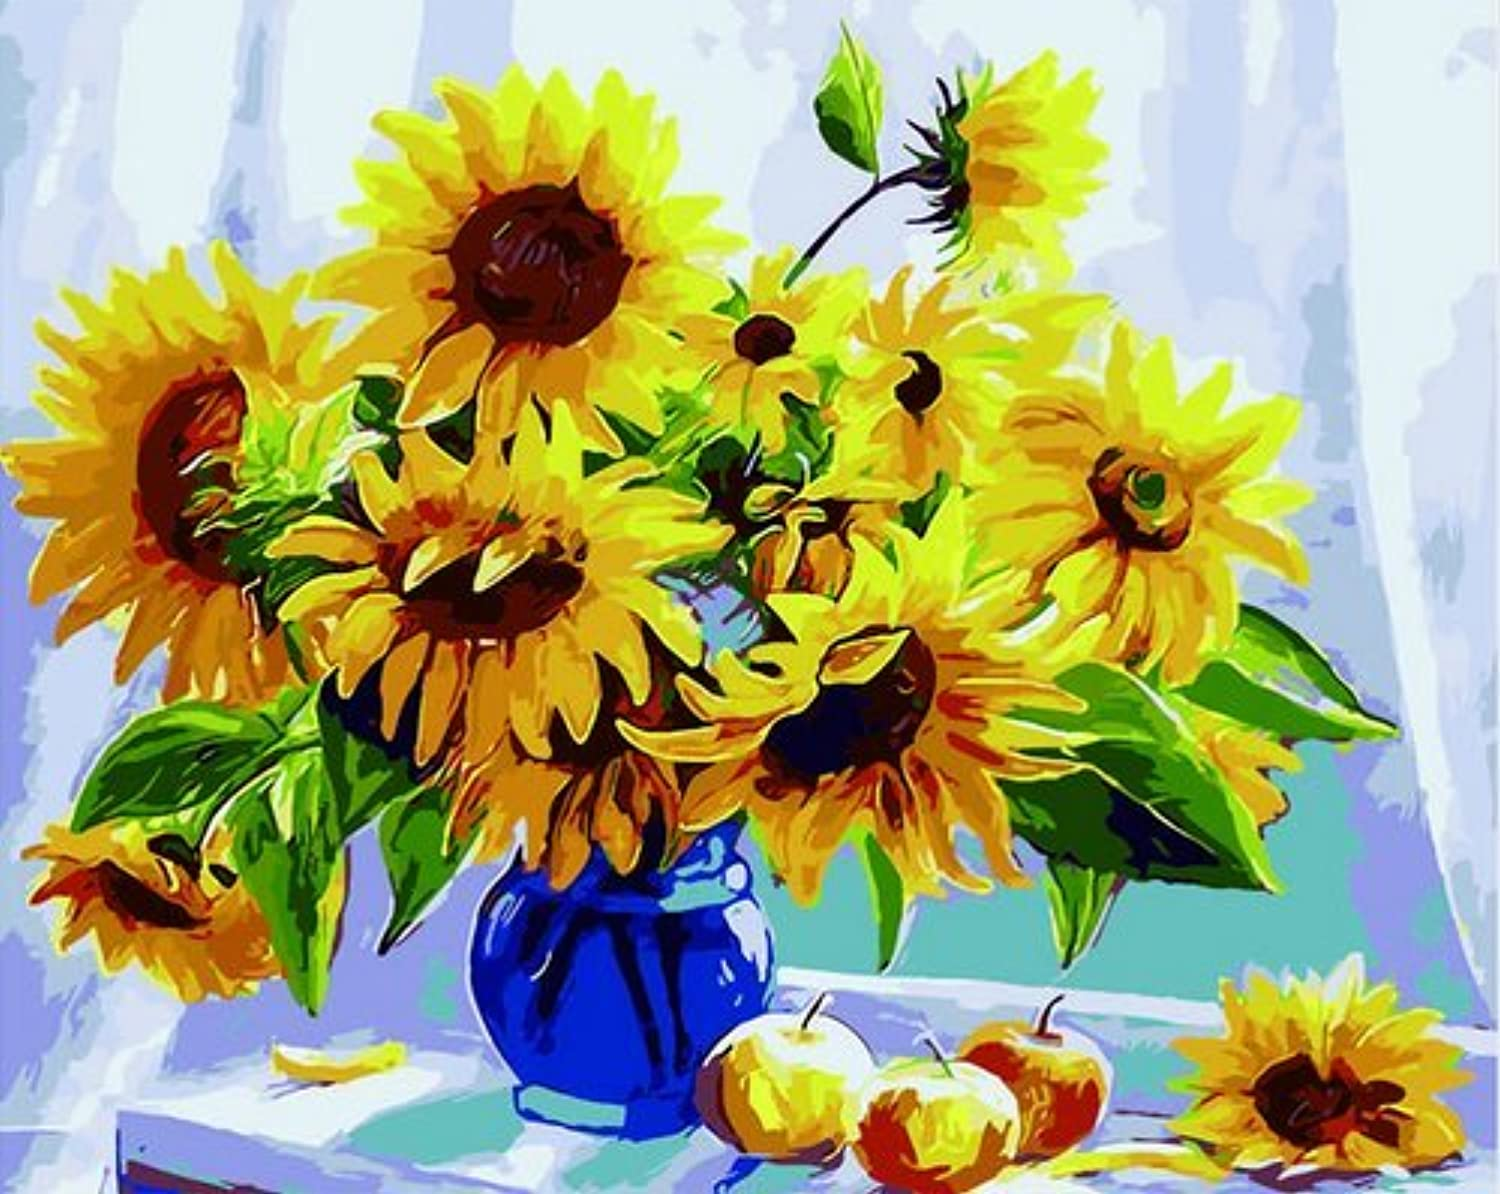 DIY Oil Painting, Paint by Number Kits -Yellow Sunflower Flower, 16X20 Inch